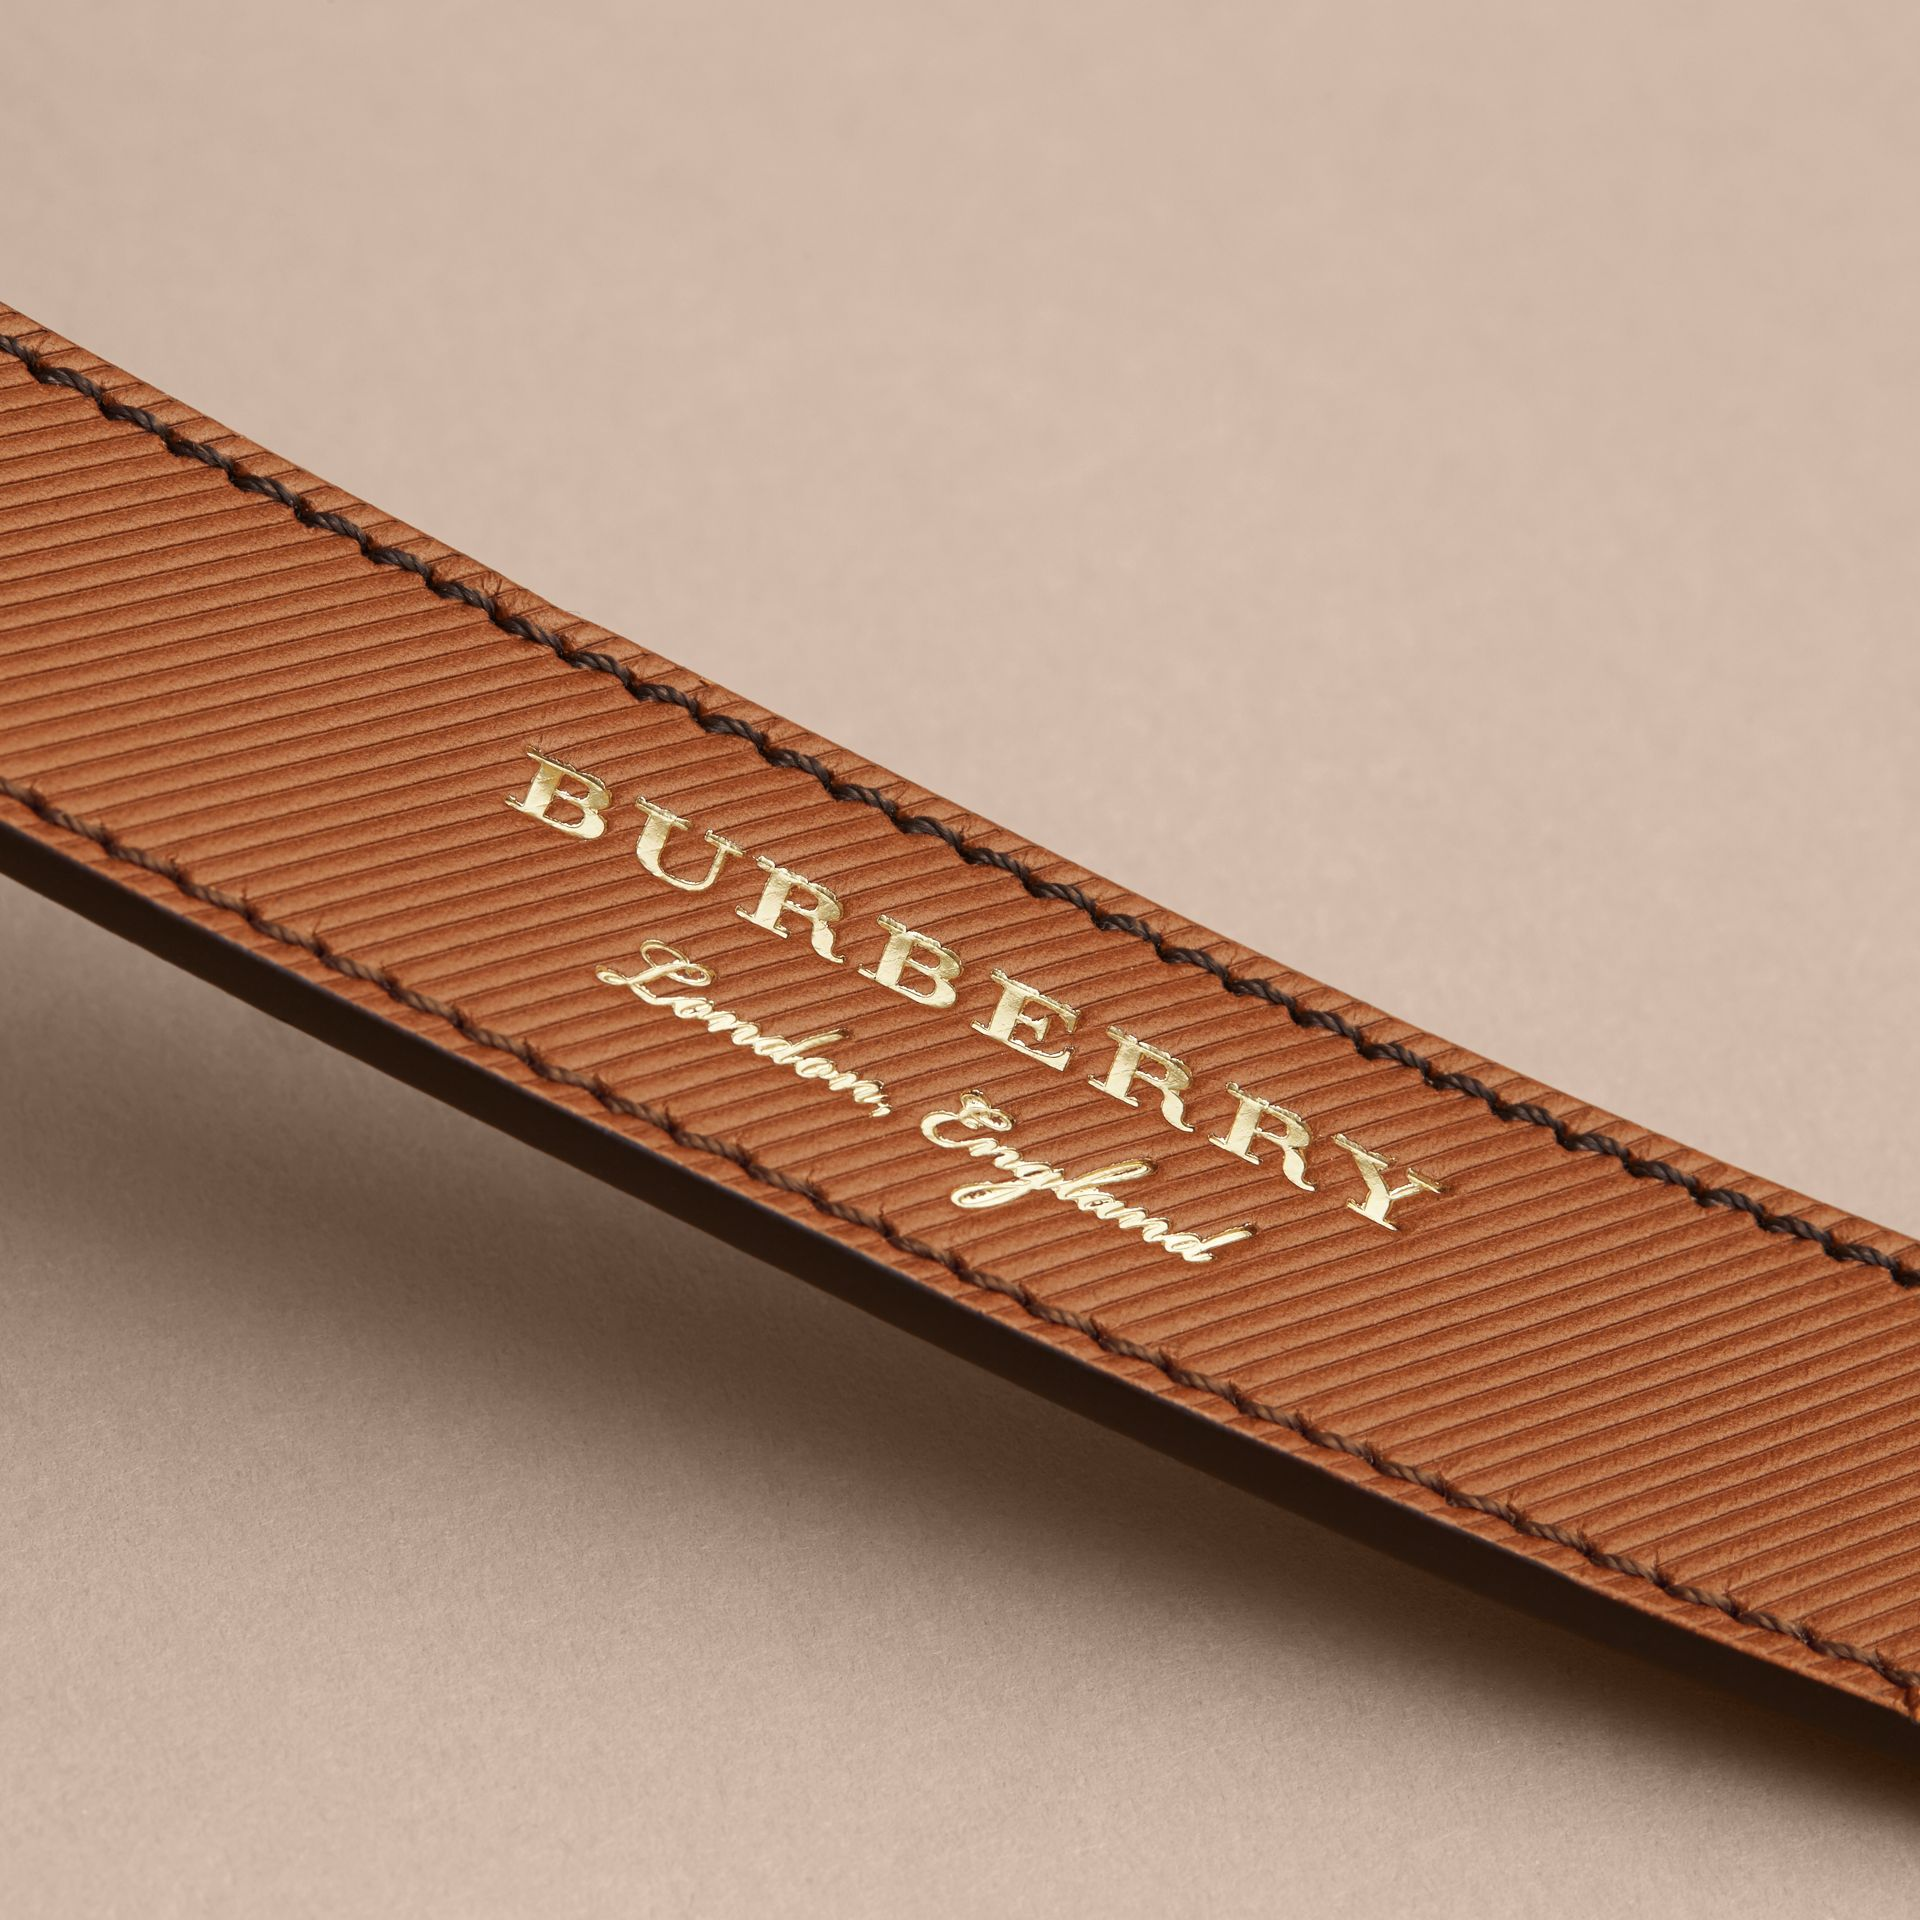 Trench Leather Belt in Tan - Men | Burberry - gallery image 2